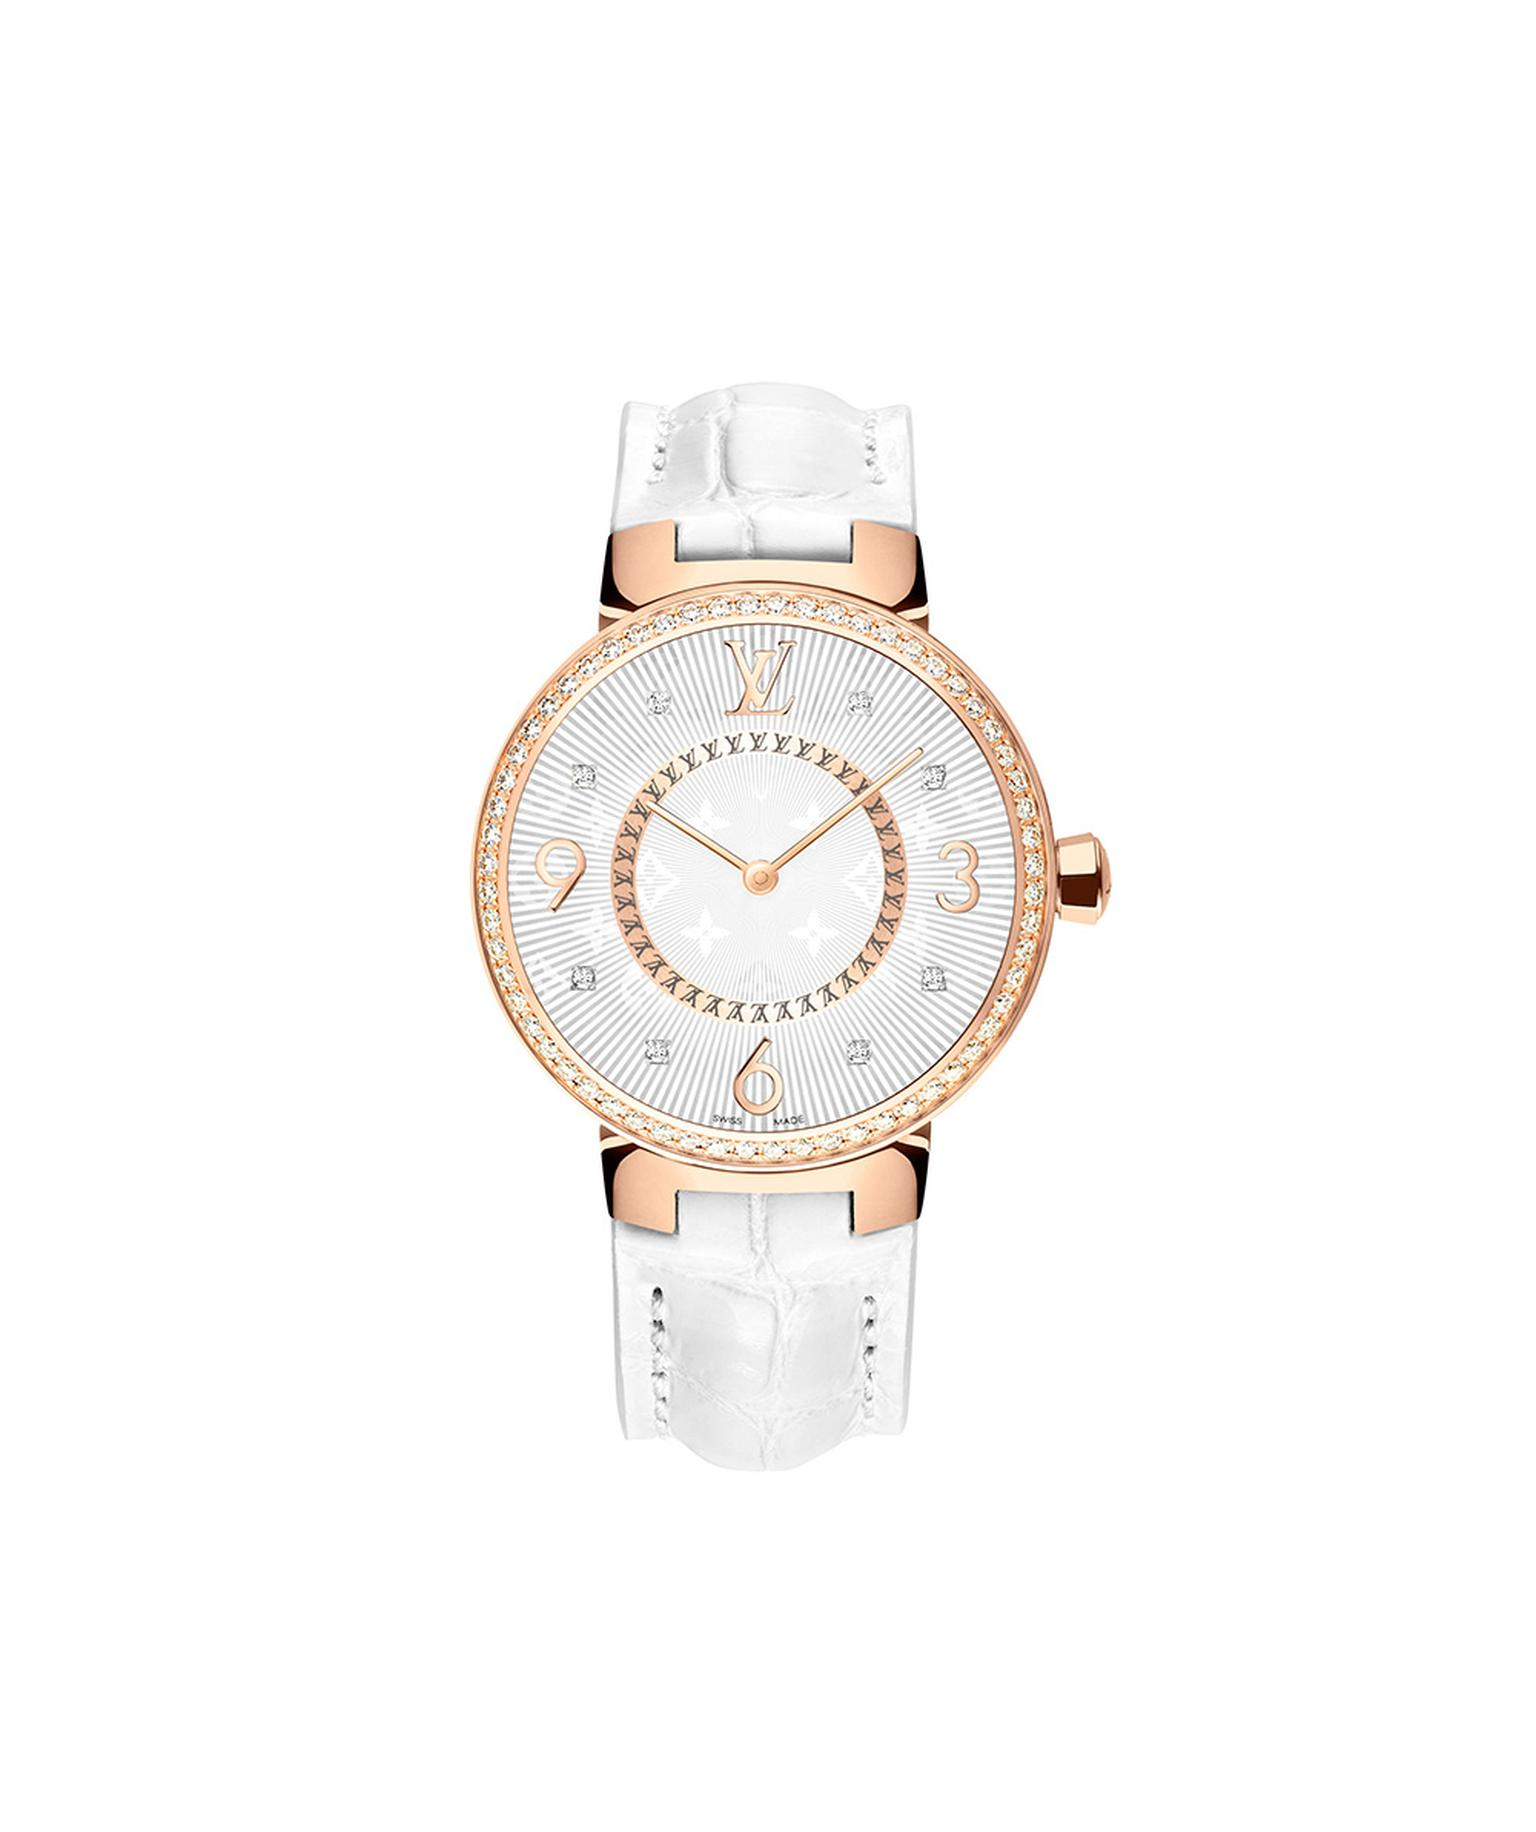 Louis Vuitton Tambour Monogram Or Rose Serti 28mm watch with a pink gold case, diamond-set bezel and a quartz movement on a white alligator strap. © LOUIS VUITTON. Auteur: I REEL.